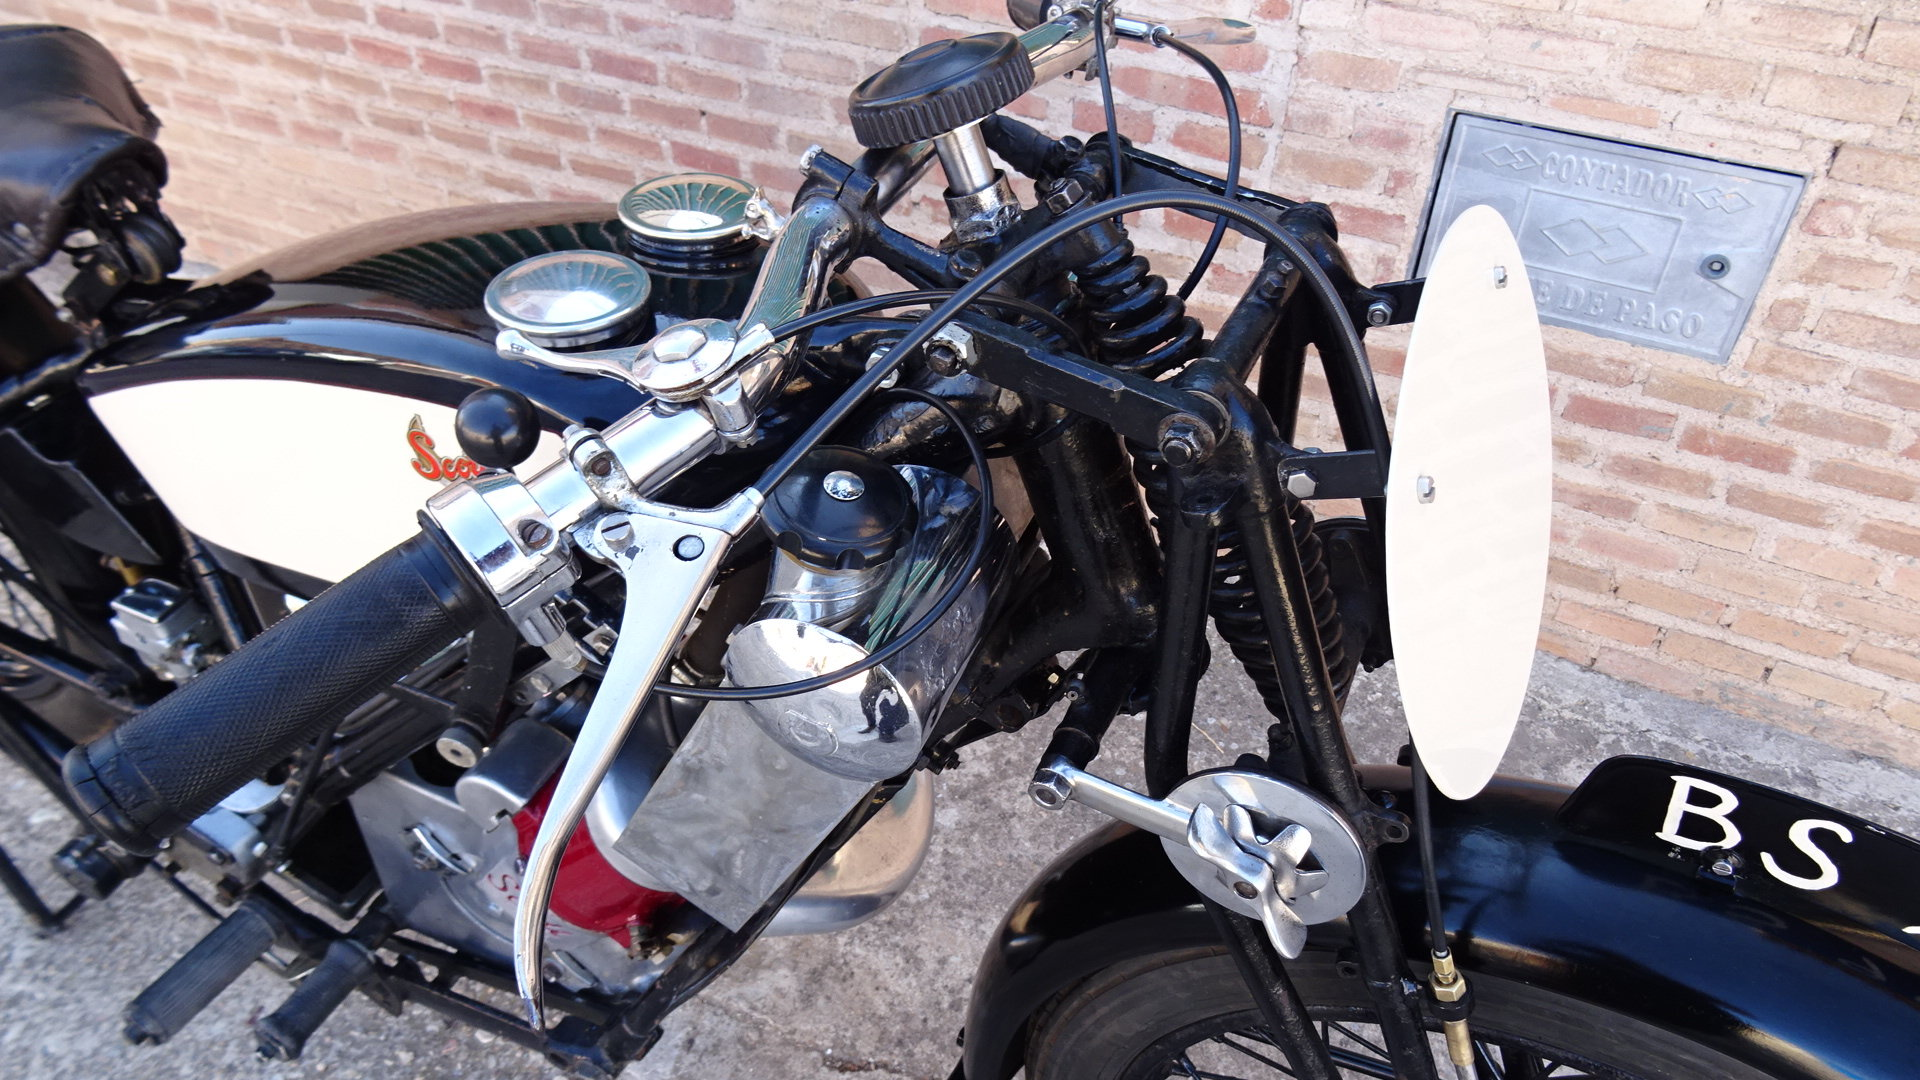 1926 Scott flying squirrel 596cc type tt racer For Sale (picture 6 of 6)